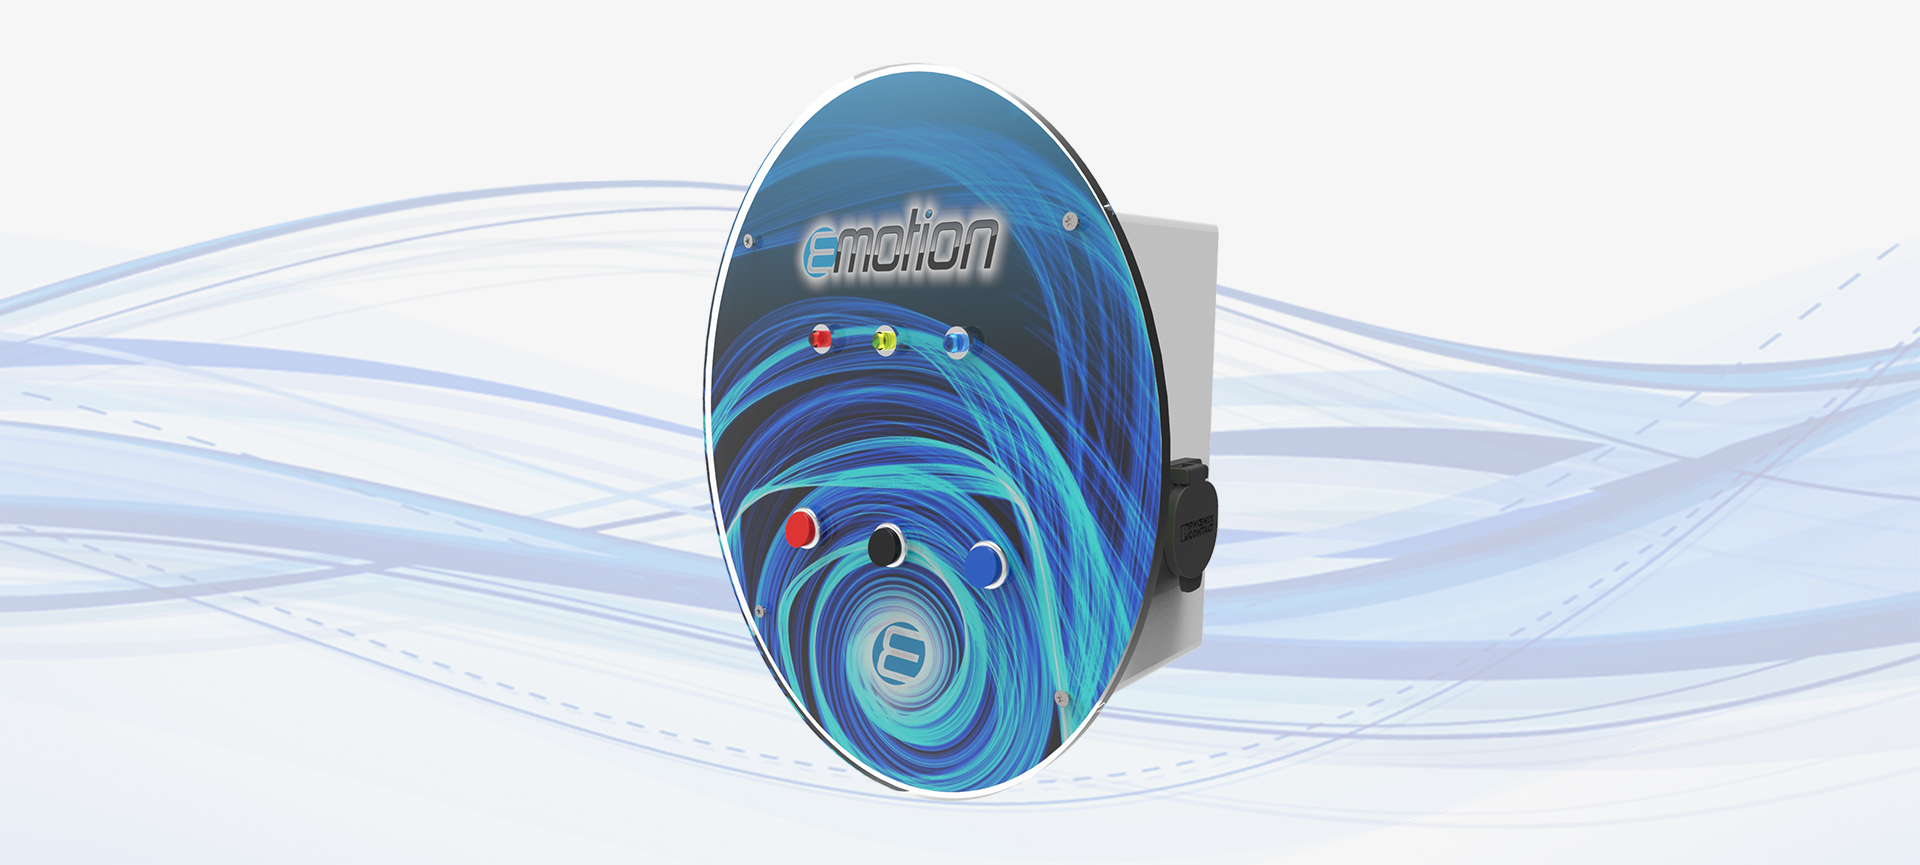 Wallbox emotion ricarica elettrica